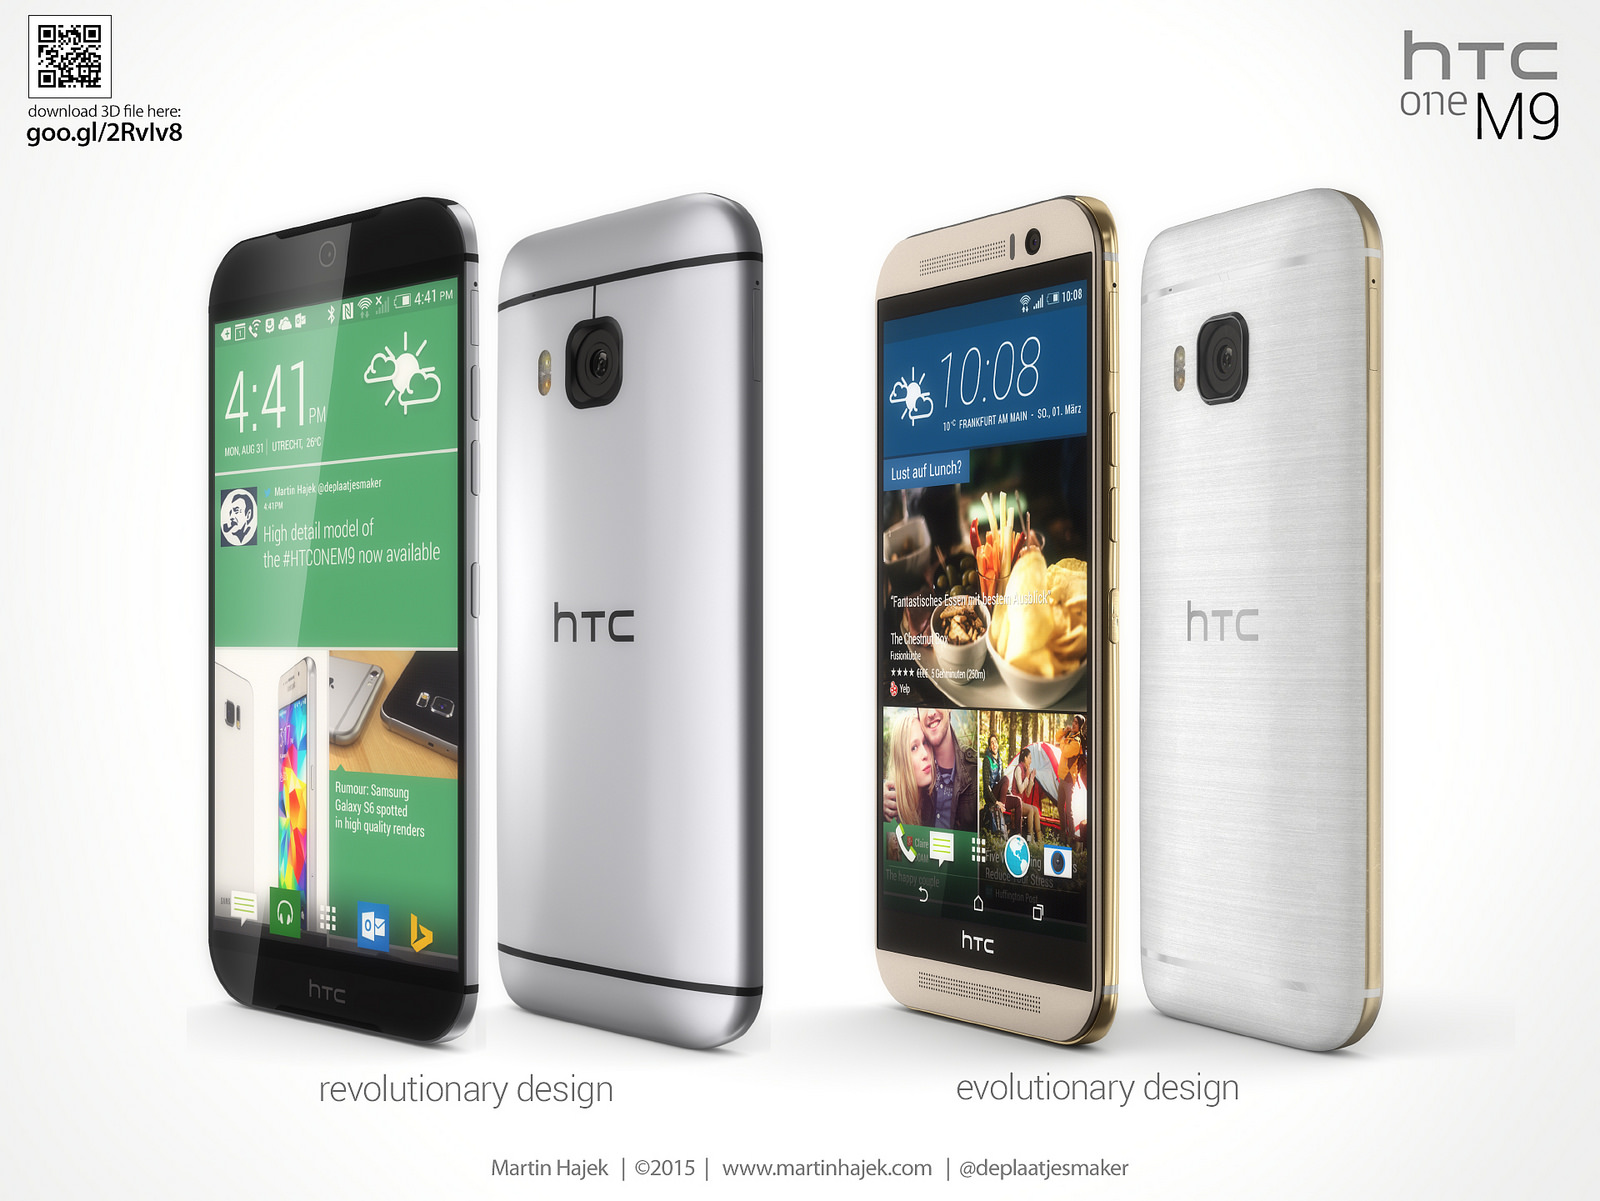 HTC-One-M9-comparativa-Martin-Hajek(1)